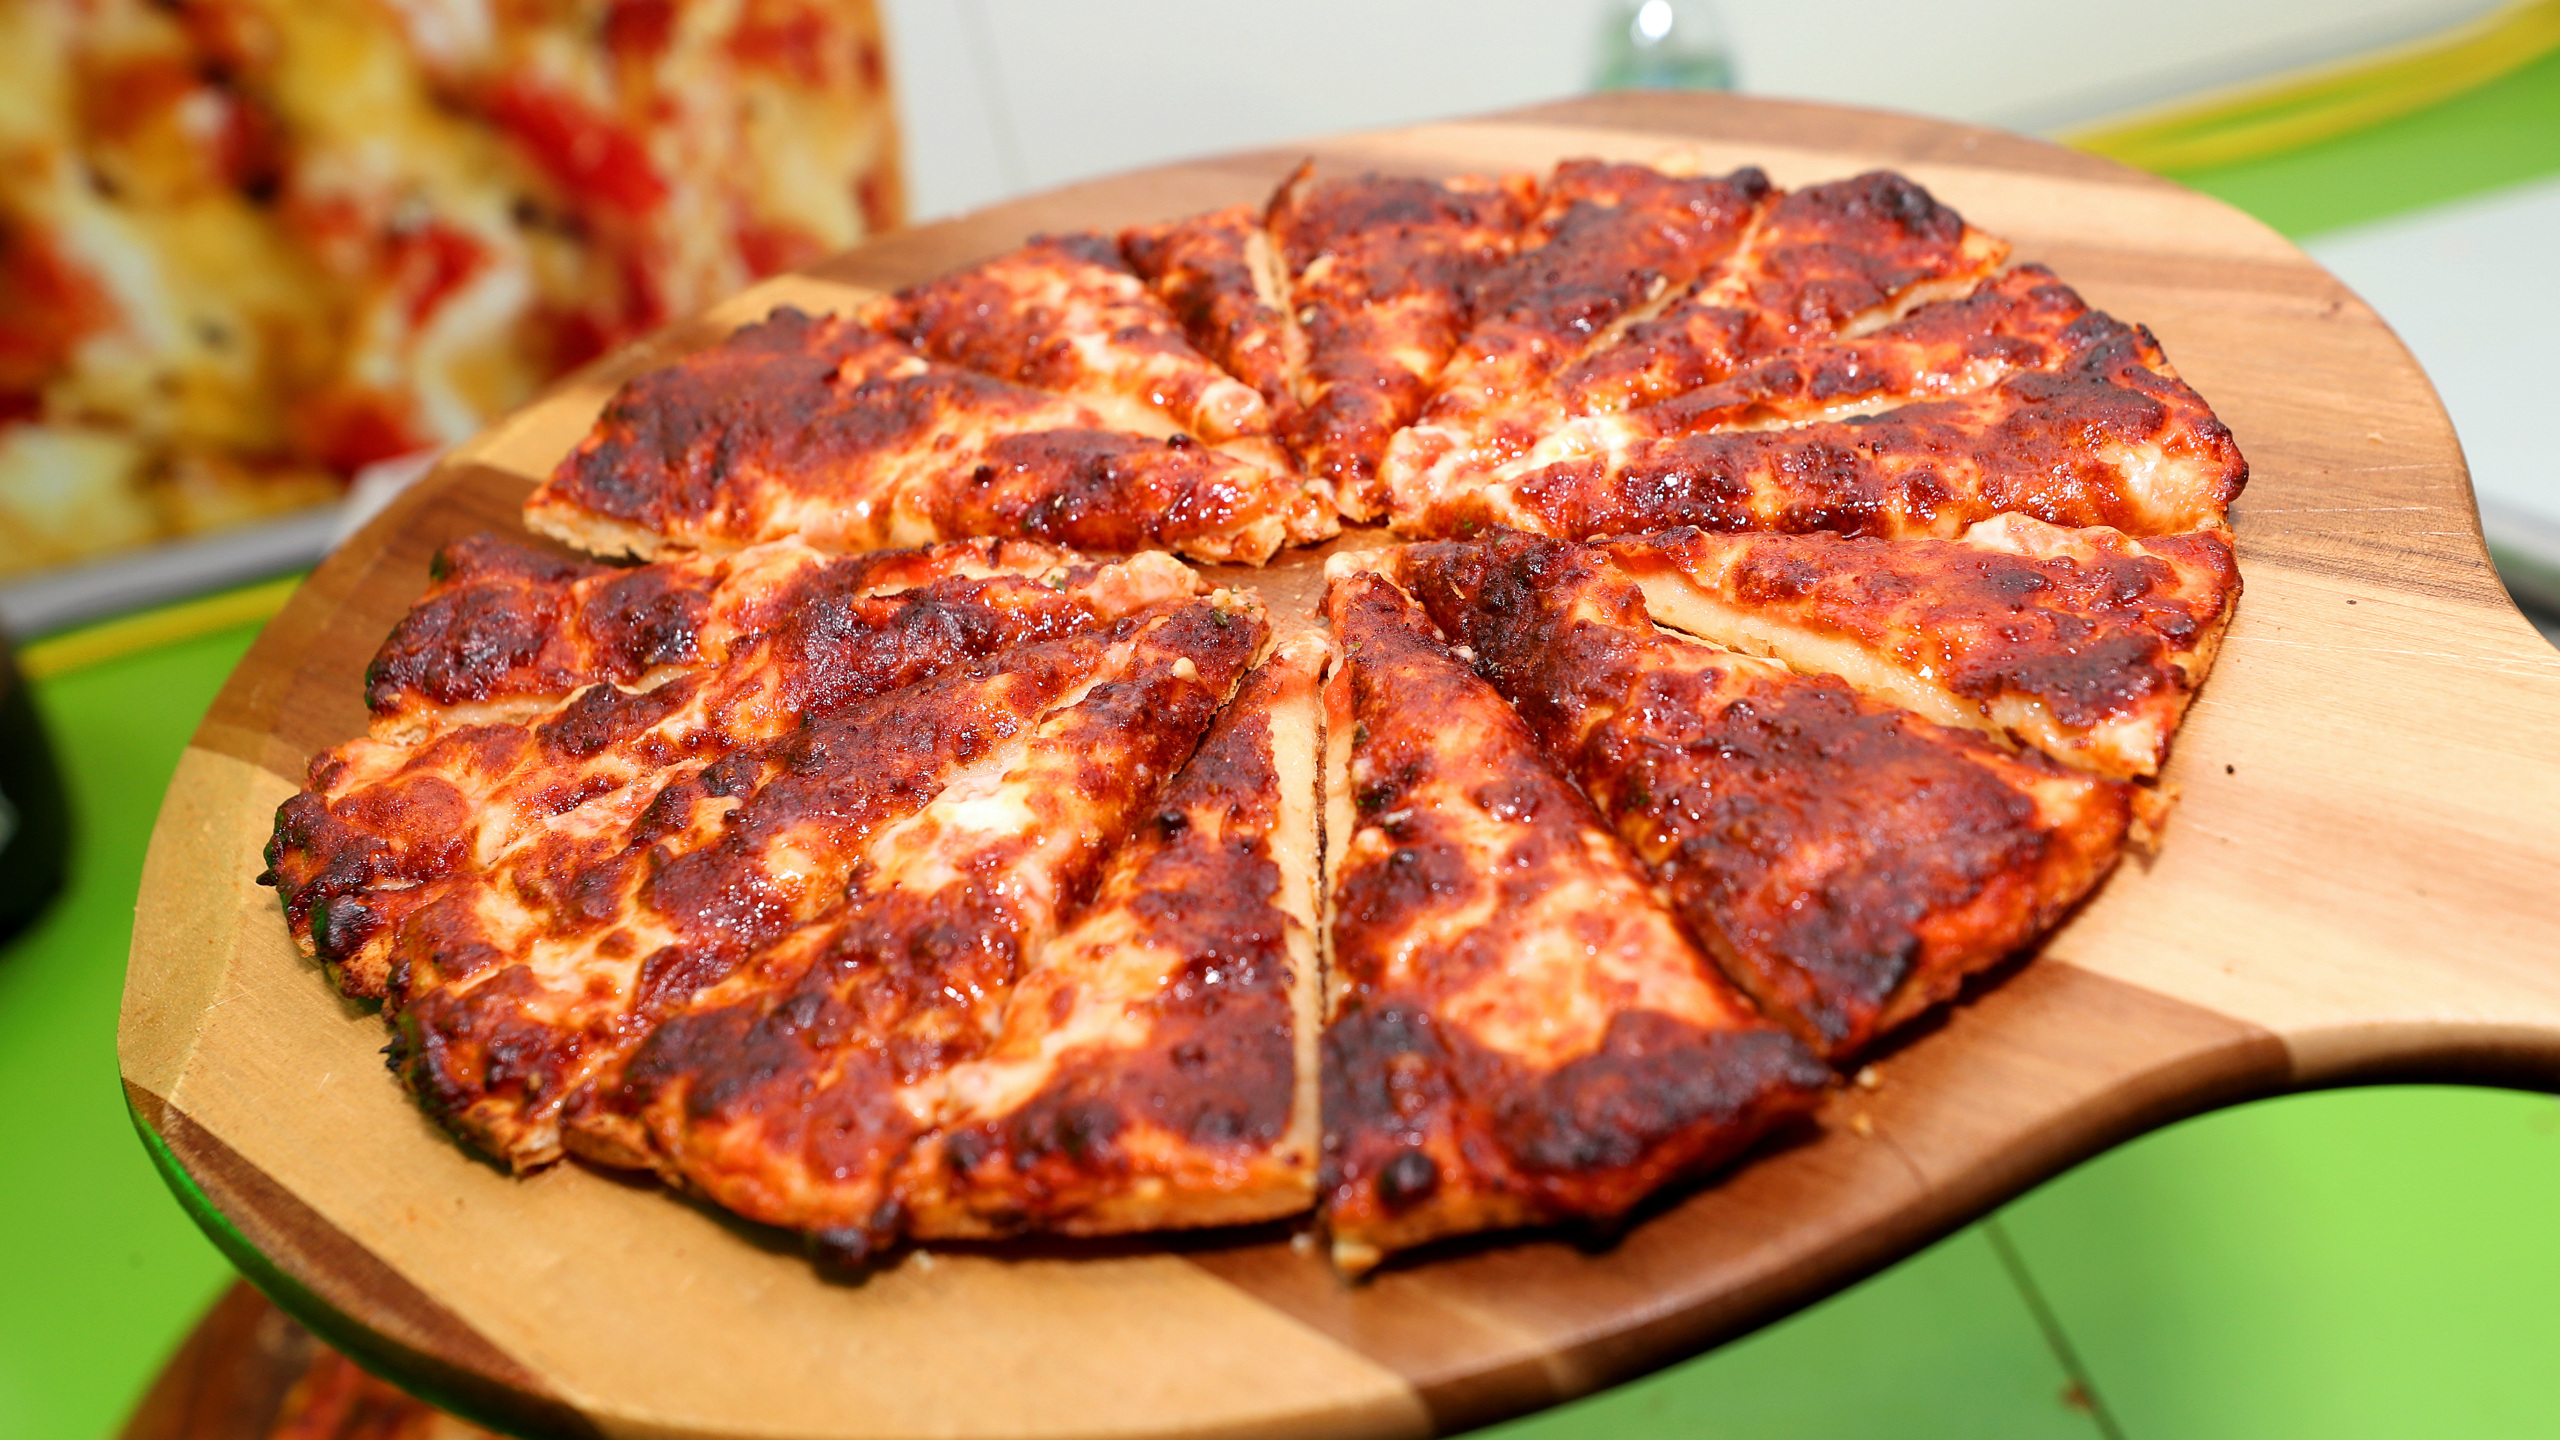 Here are the deals on National Pizza Day Feb 9 WLNS 6 News 2560x1440